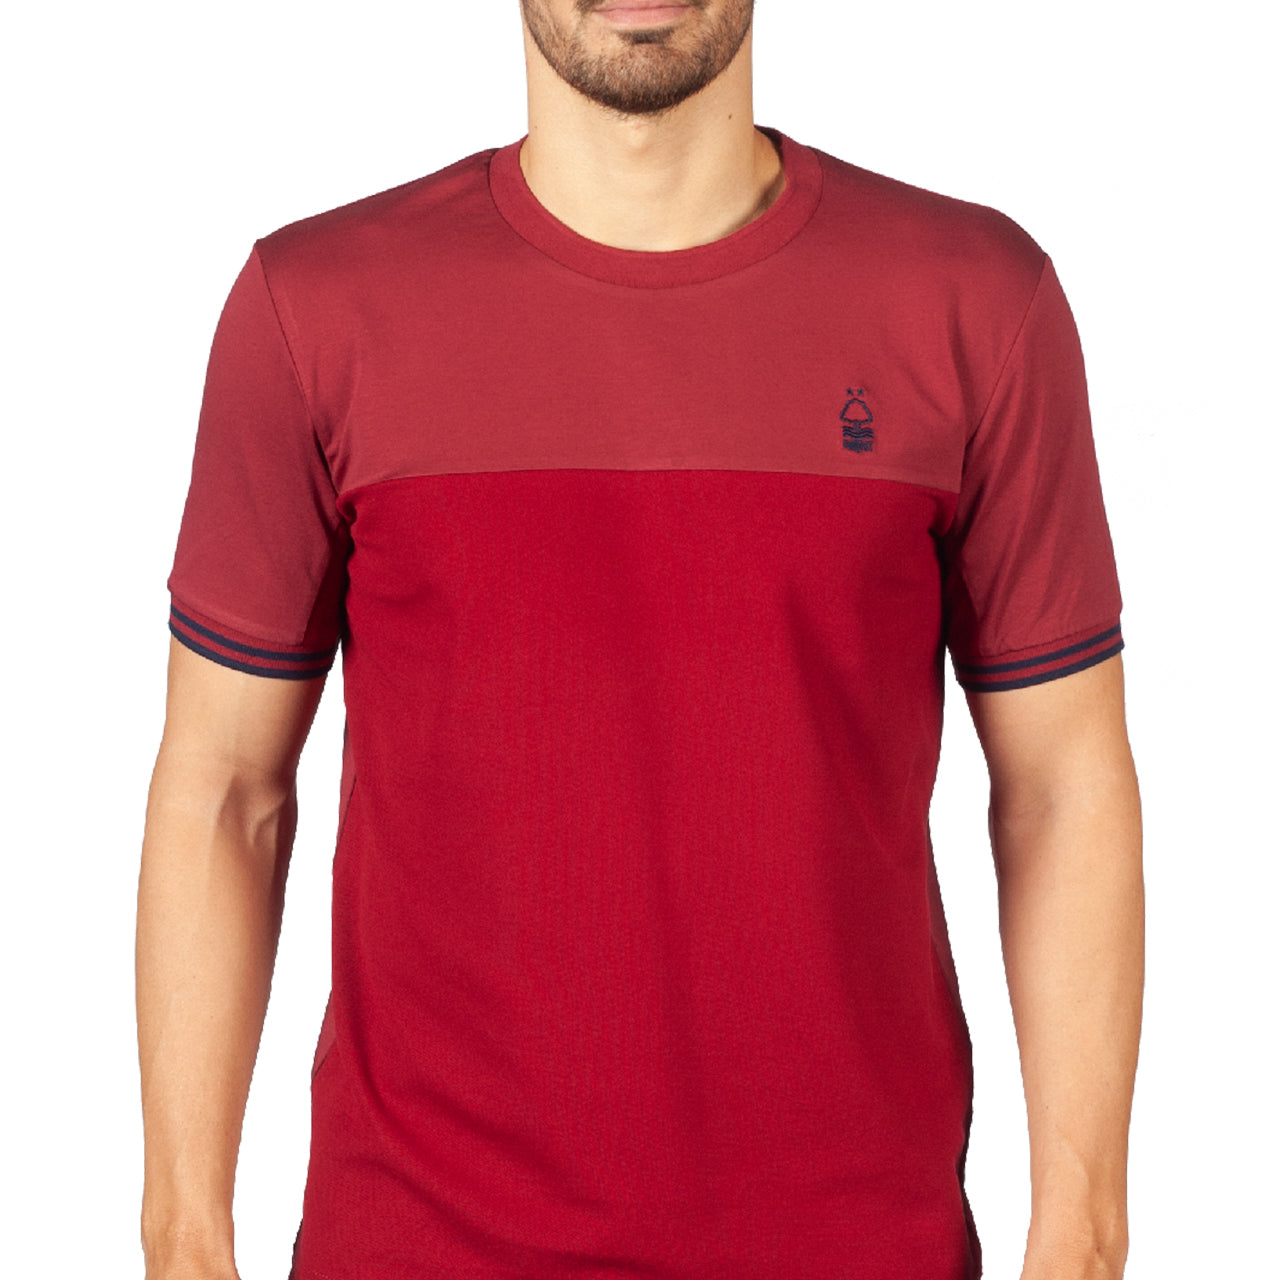 NFFC Mens Deep Red Pique Block T-Shirt